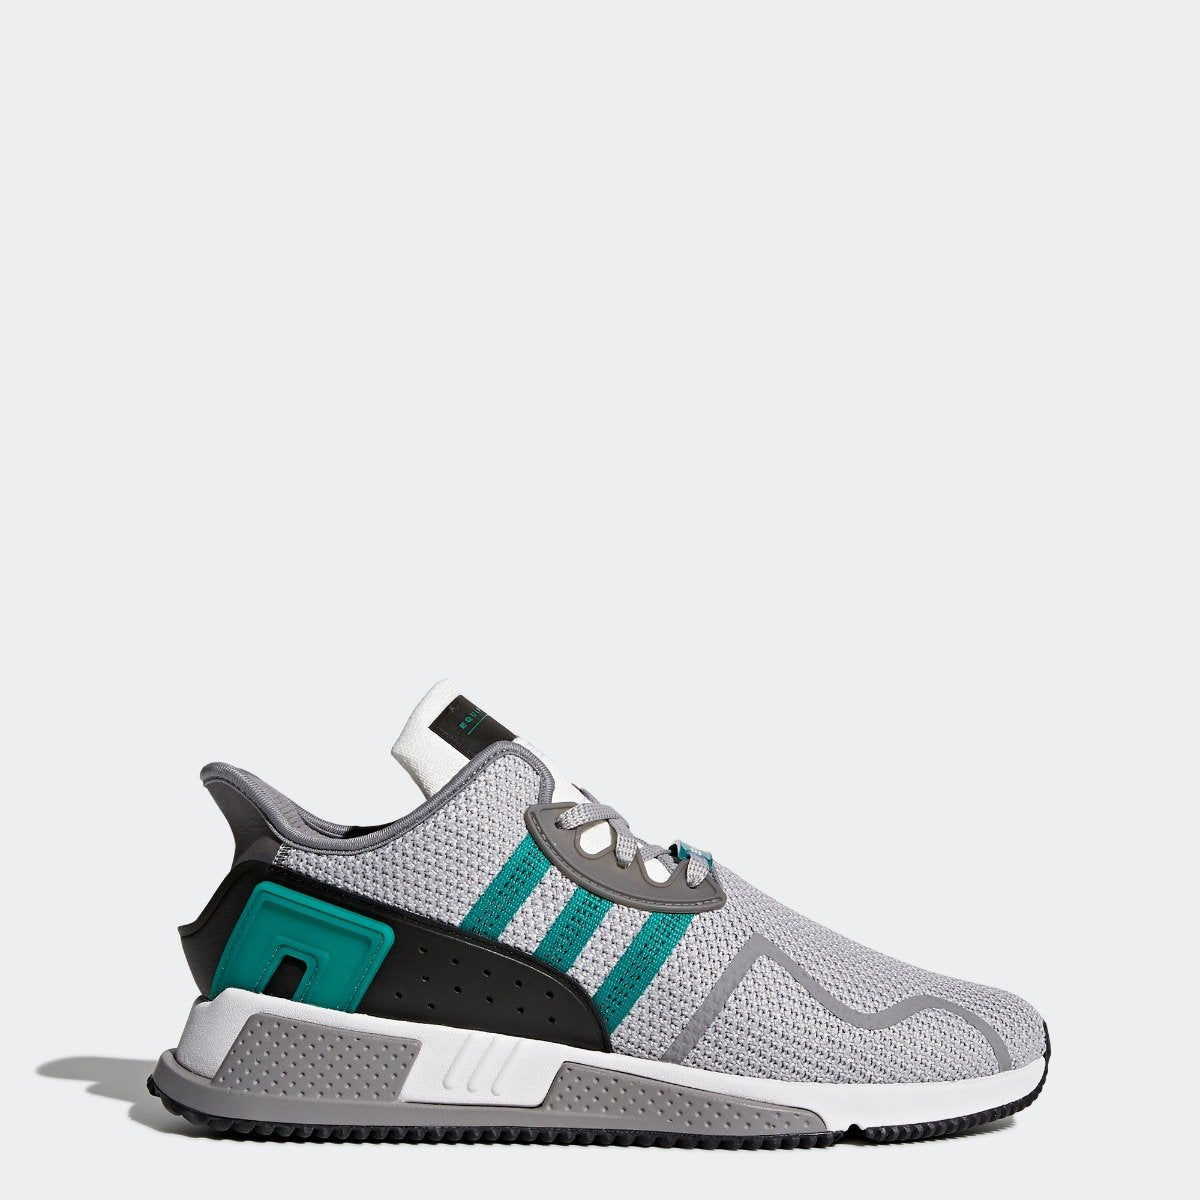 097ca71b25a5 Men s adidas Originals EQT Cushion ADV Shoes Grey with Sub Green ...